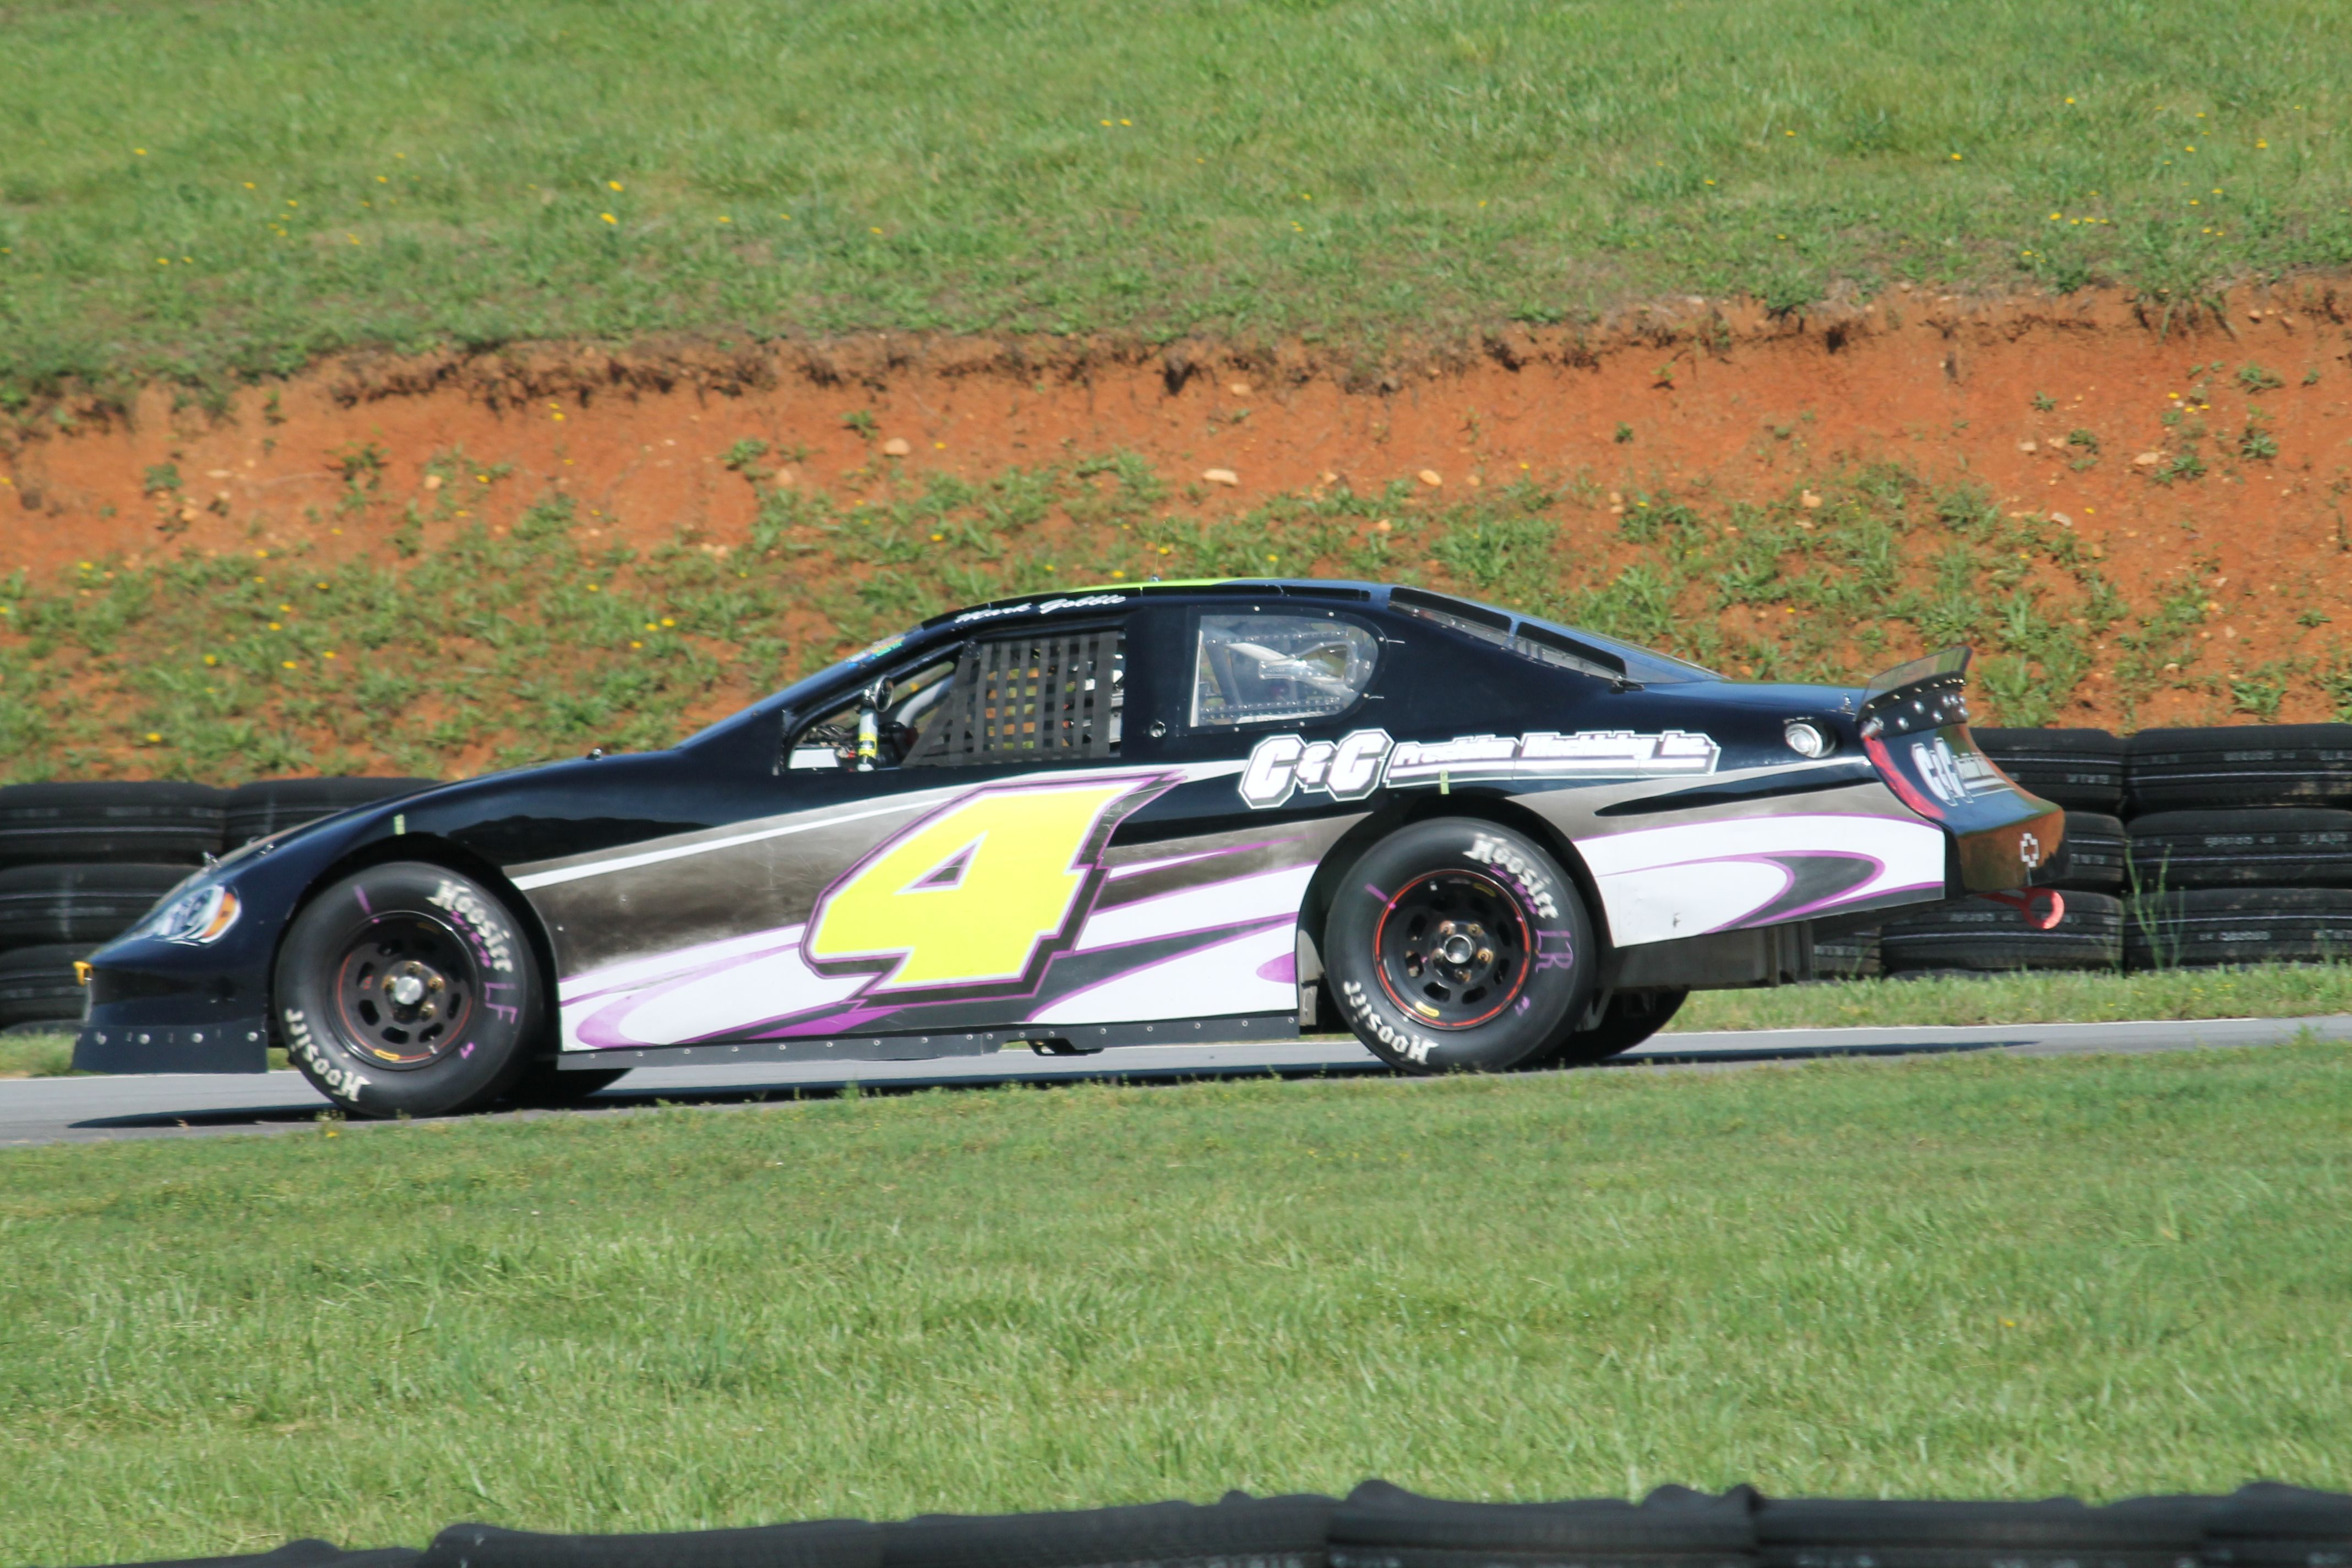 4 2003 Chevy Monte Carlo of Mark Gobble at VIR May 2016 photo by